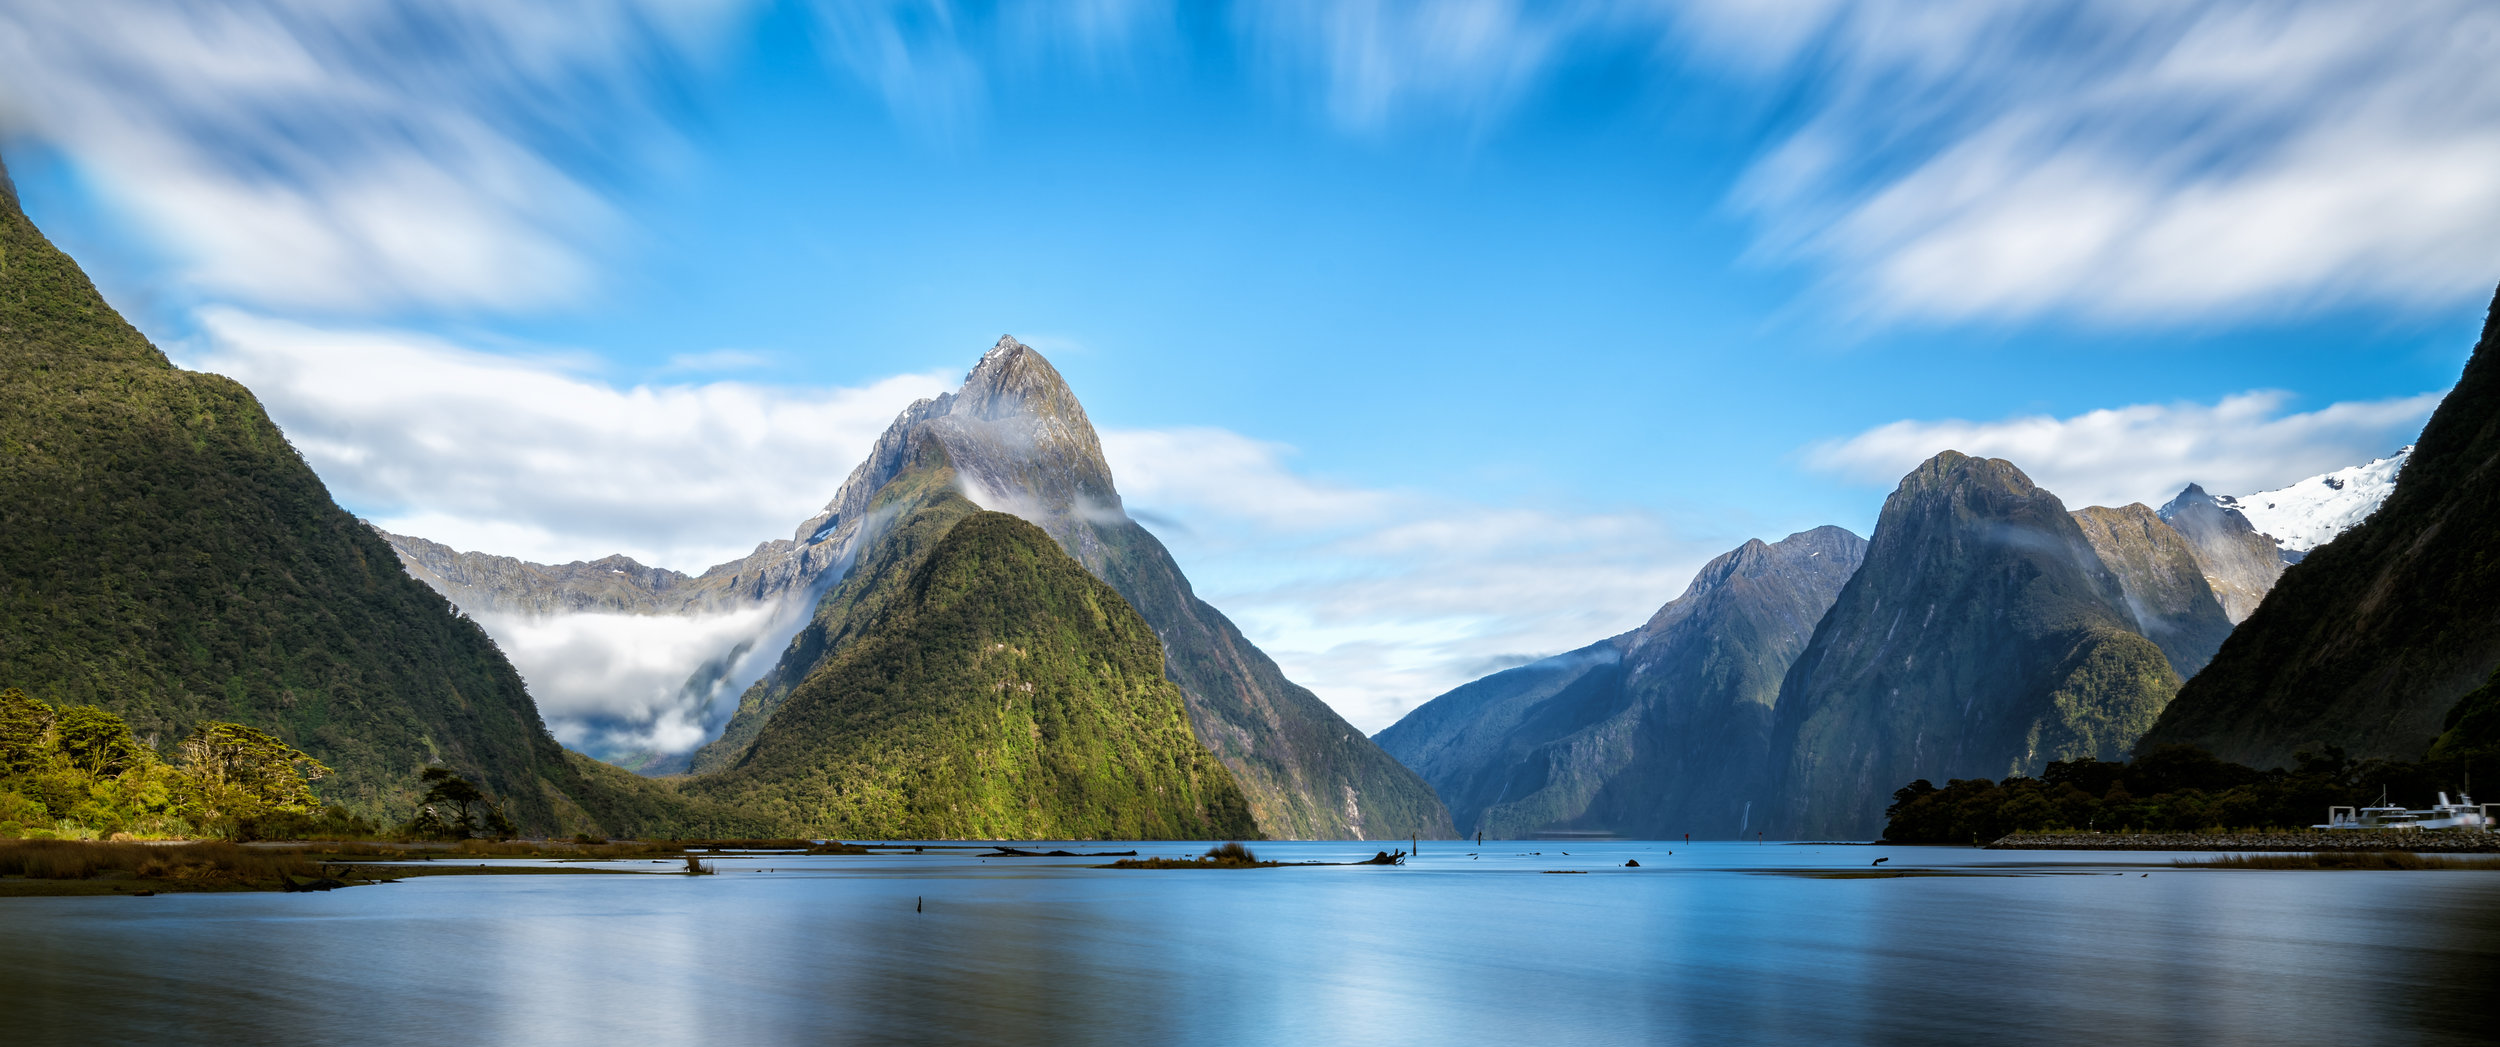 NEW ZEALAND - FIND OUT MORE